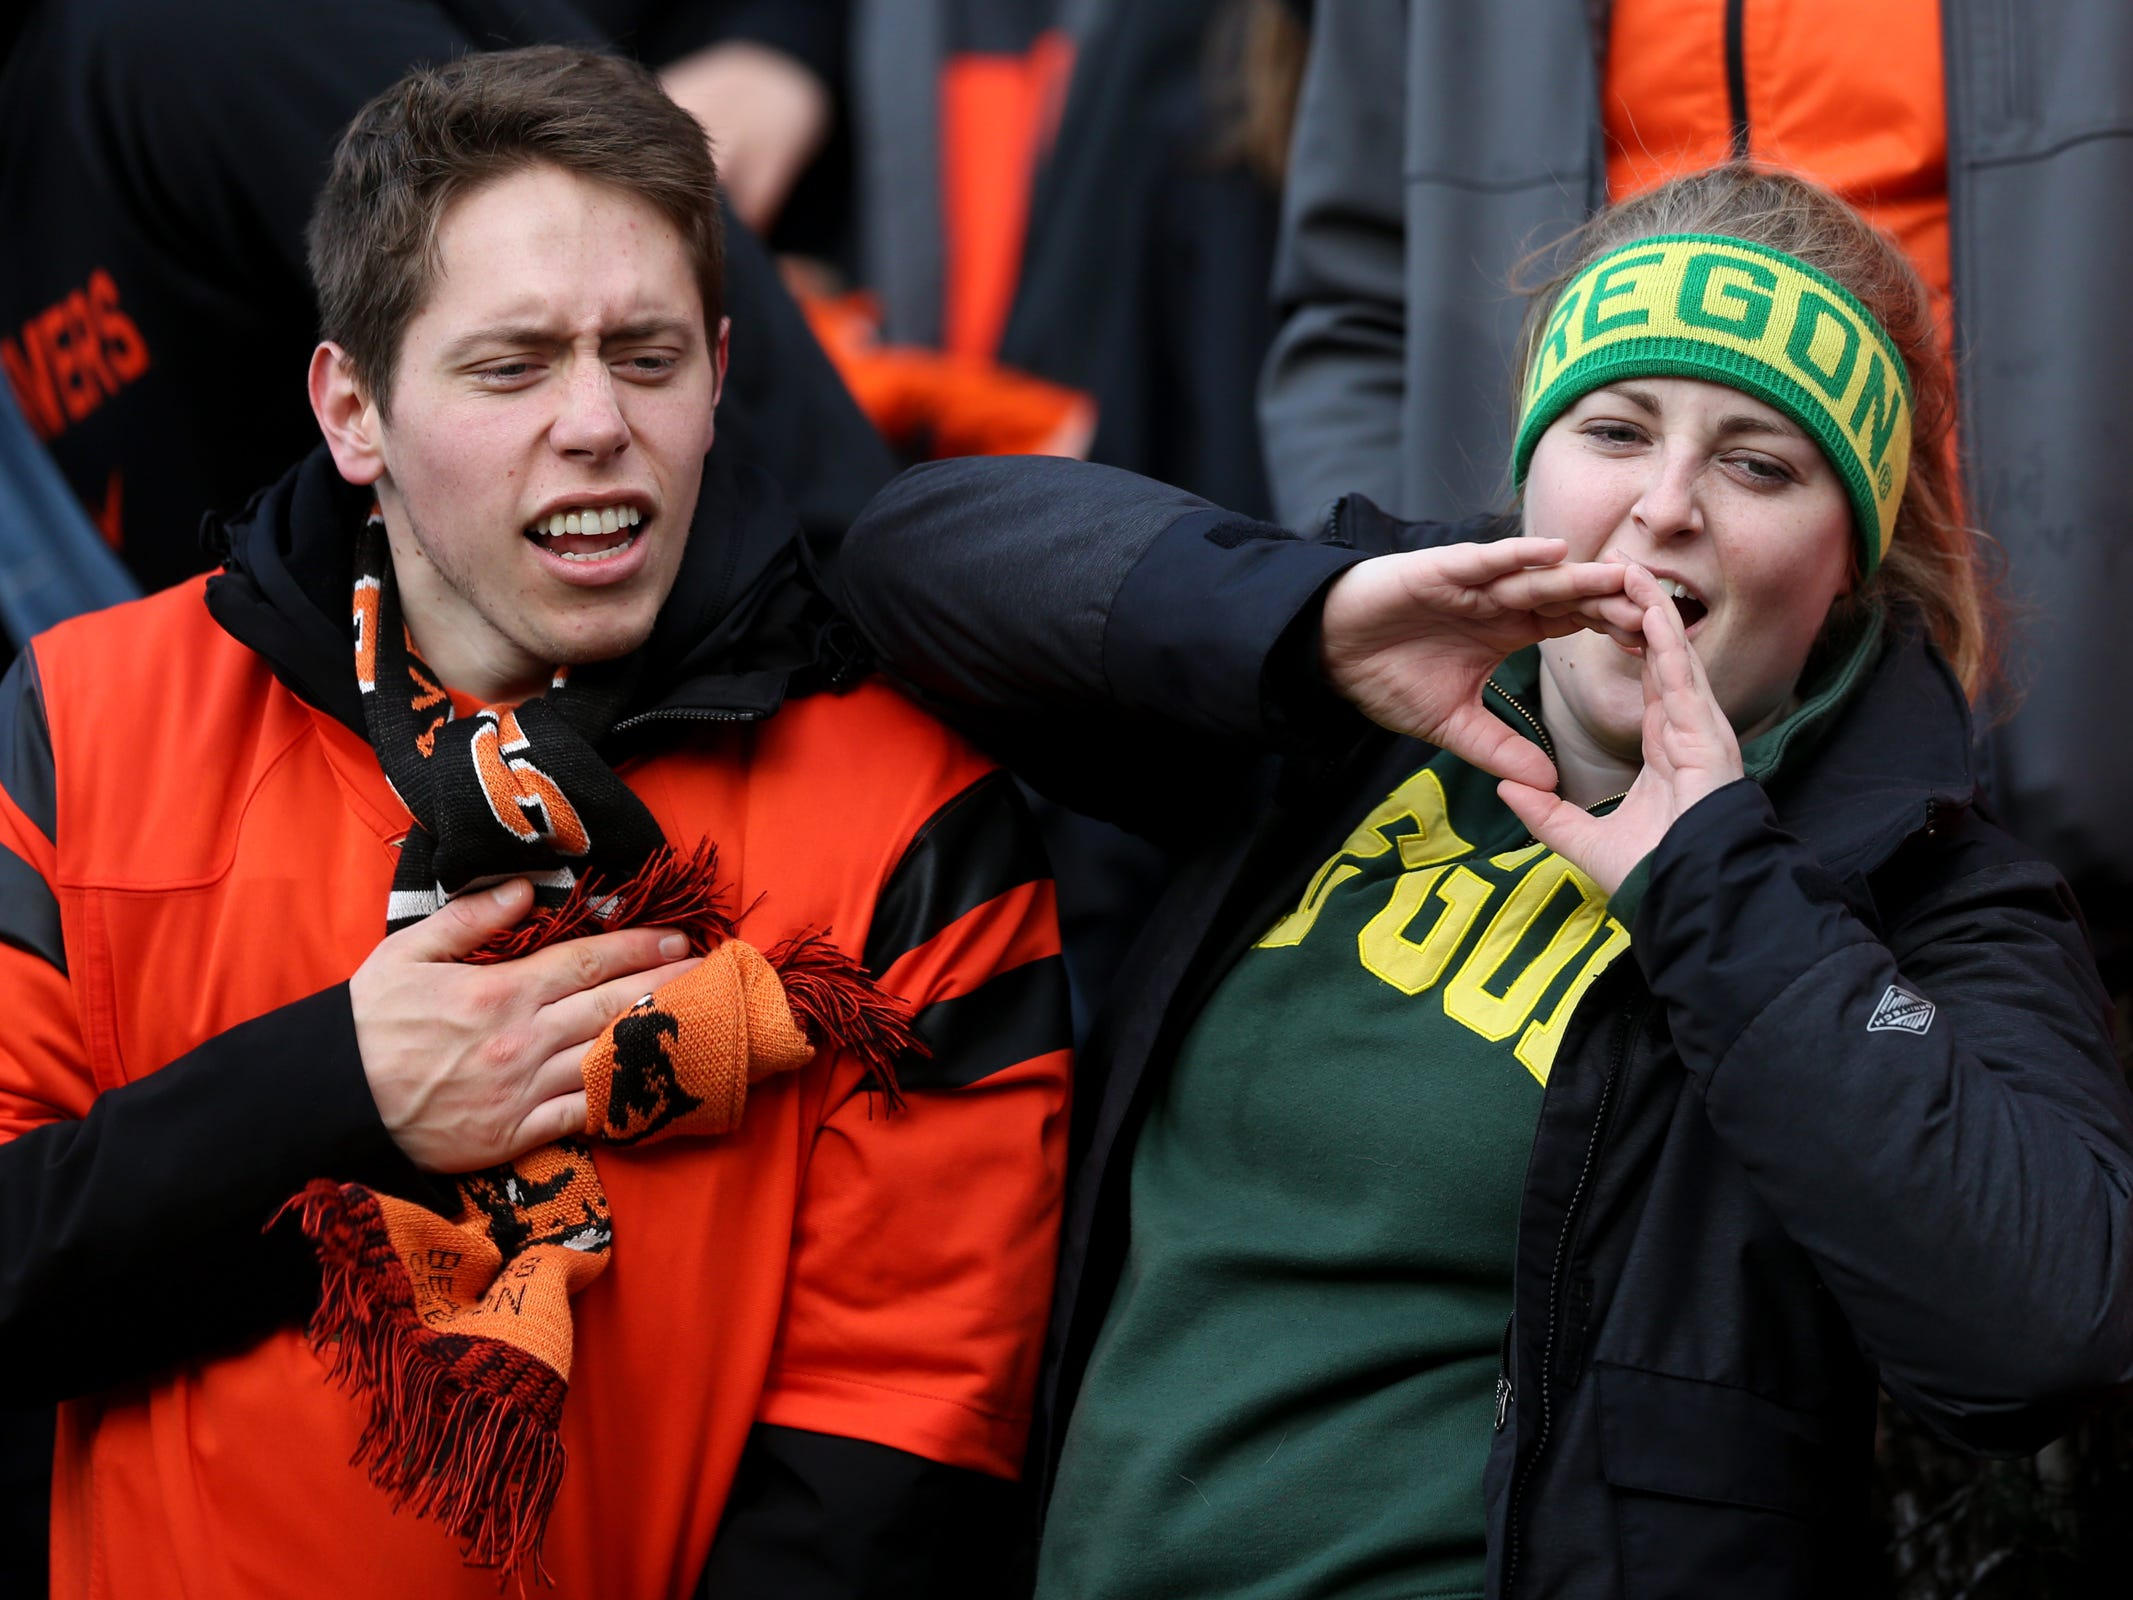 Thomas Cramer, an Oregon State senior math major, and Cari Carter, an Oregon senior human physiology major, cheer on their teams in the Oregon vs. Oregon State Civil war football game at Oregon State University in Corvallis on Friday, Nov. 23, 2018.